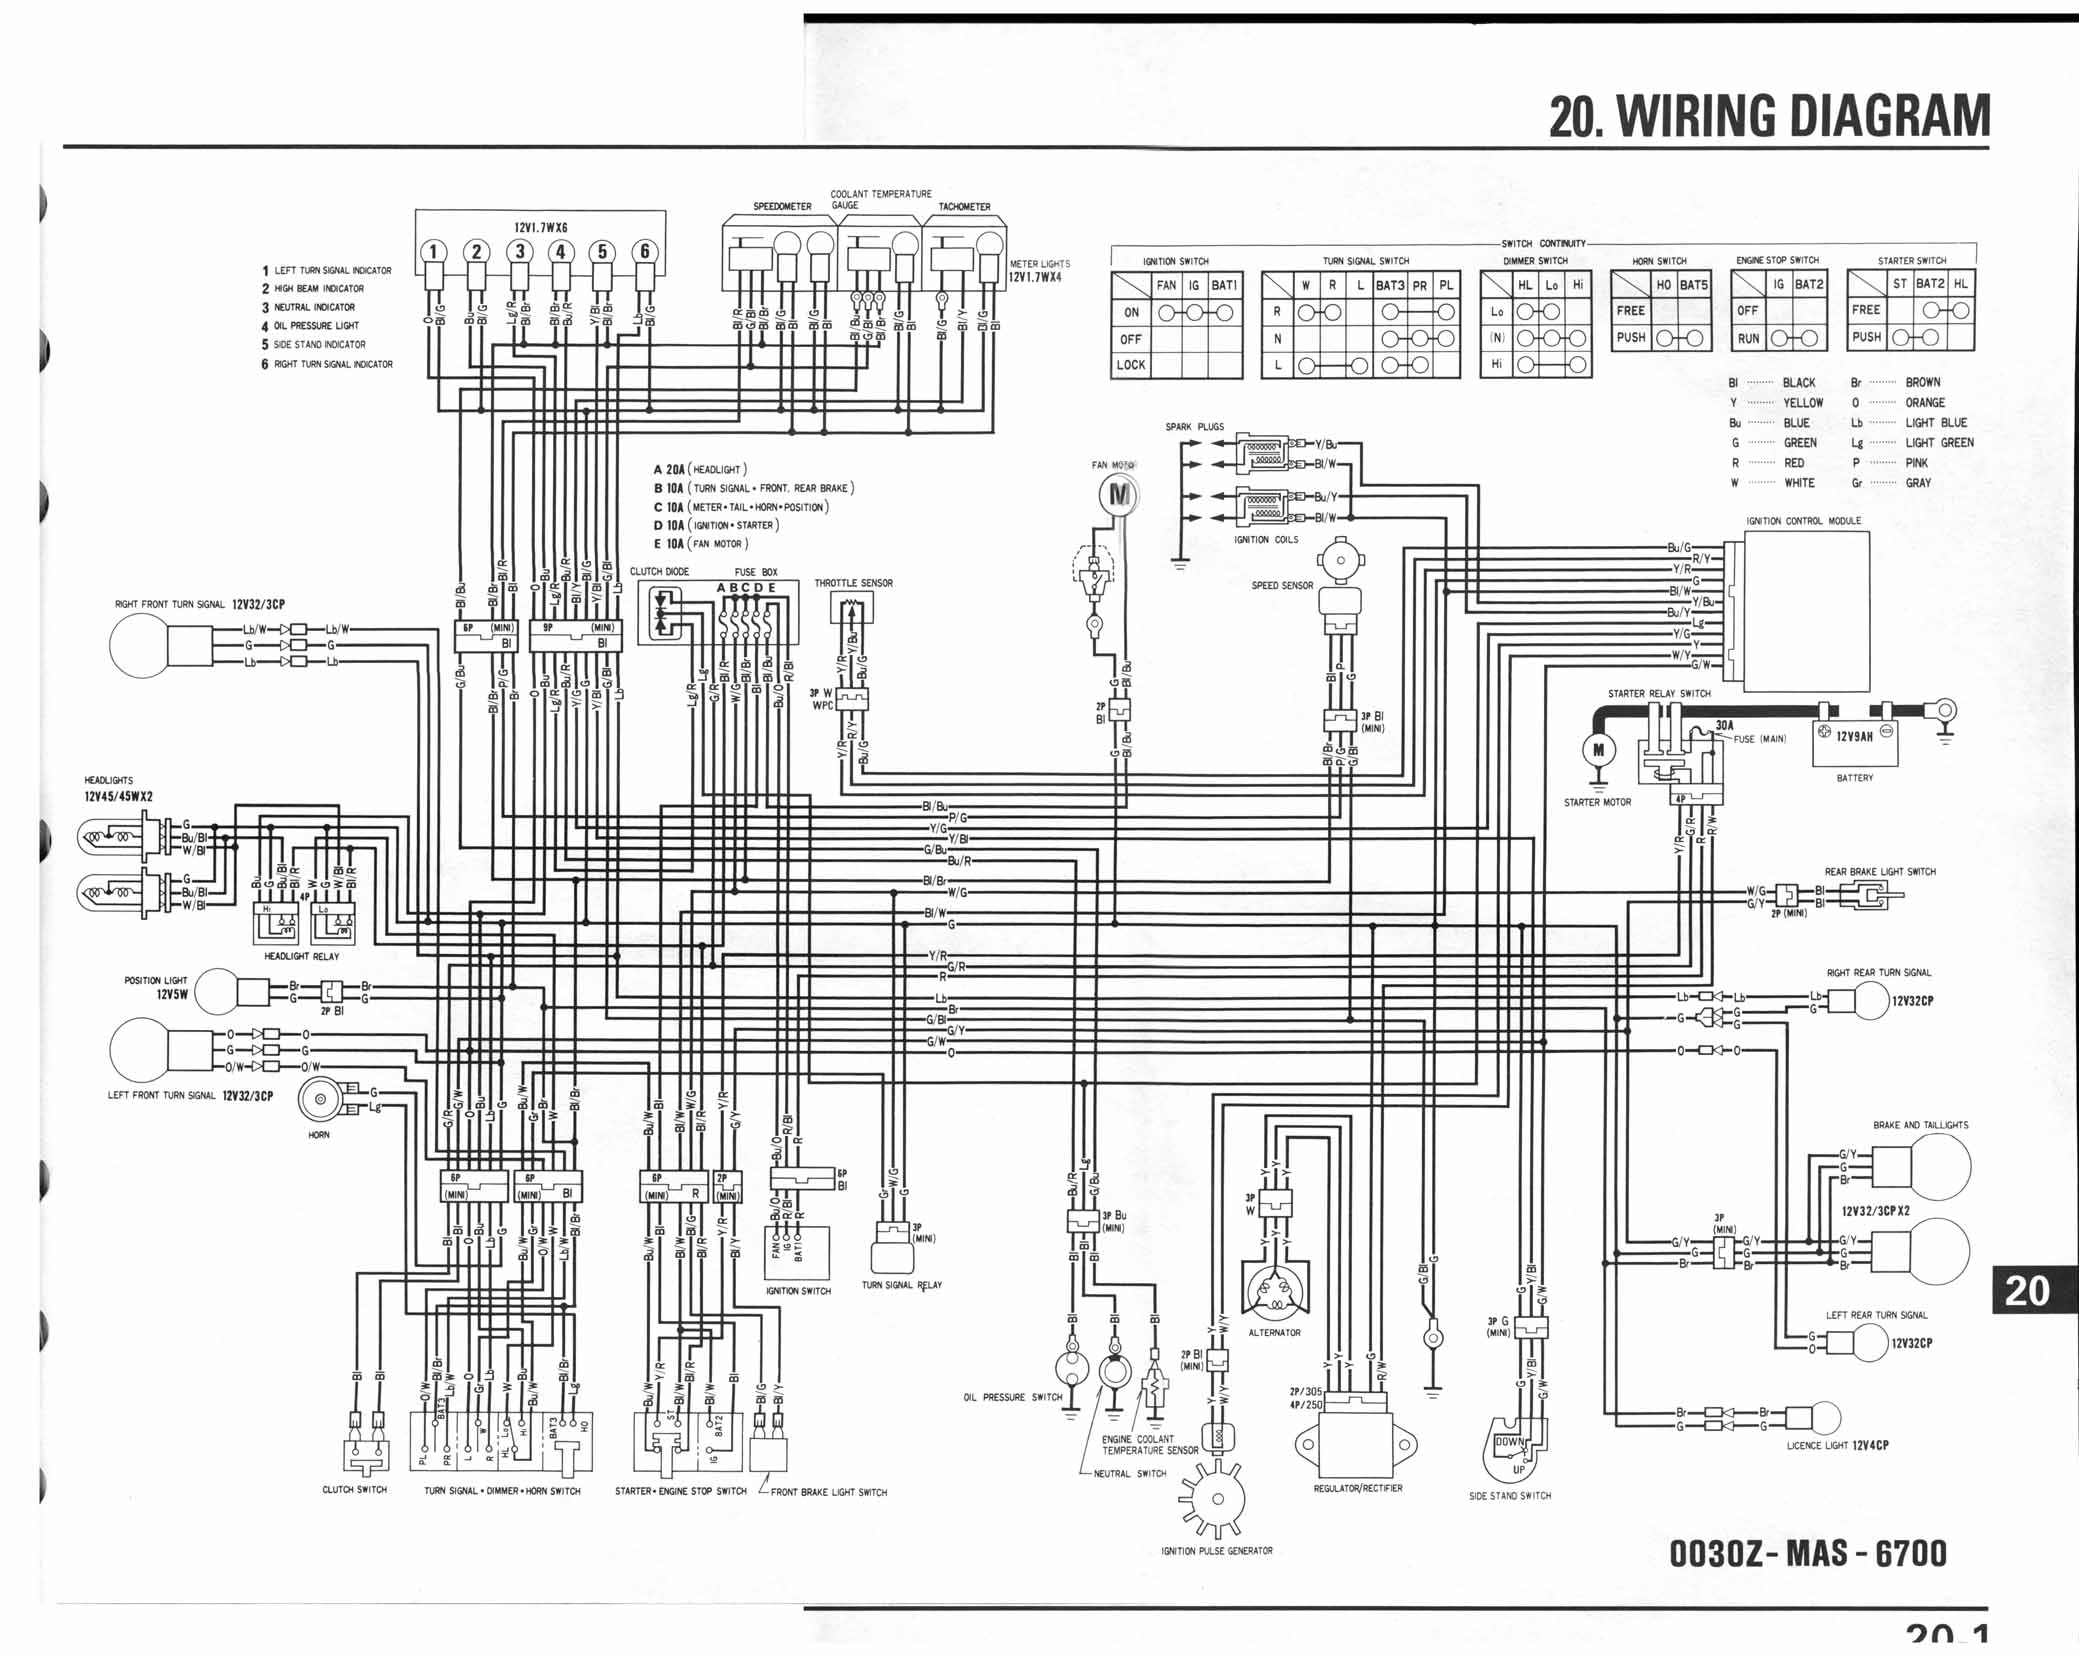 900rr wiring s diagrams 800548 honda ct70 wiring diagram ct70 wiring diagrams honda trail 90 wiring diagram at eliteediting.co